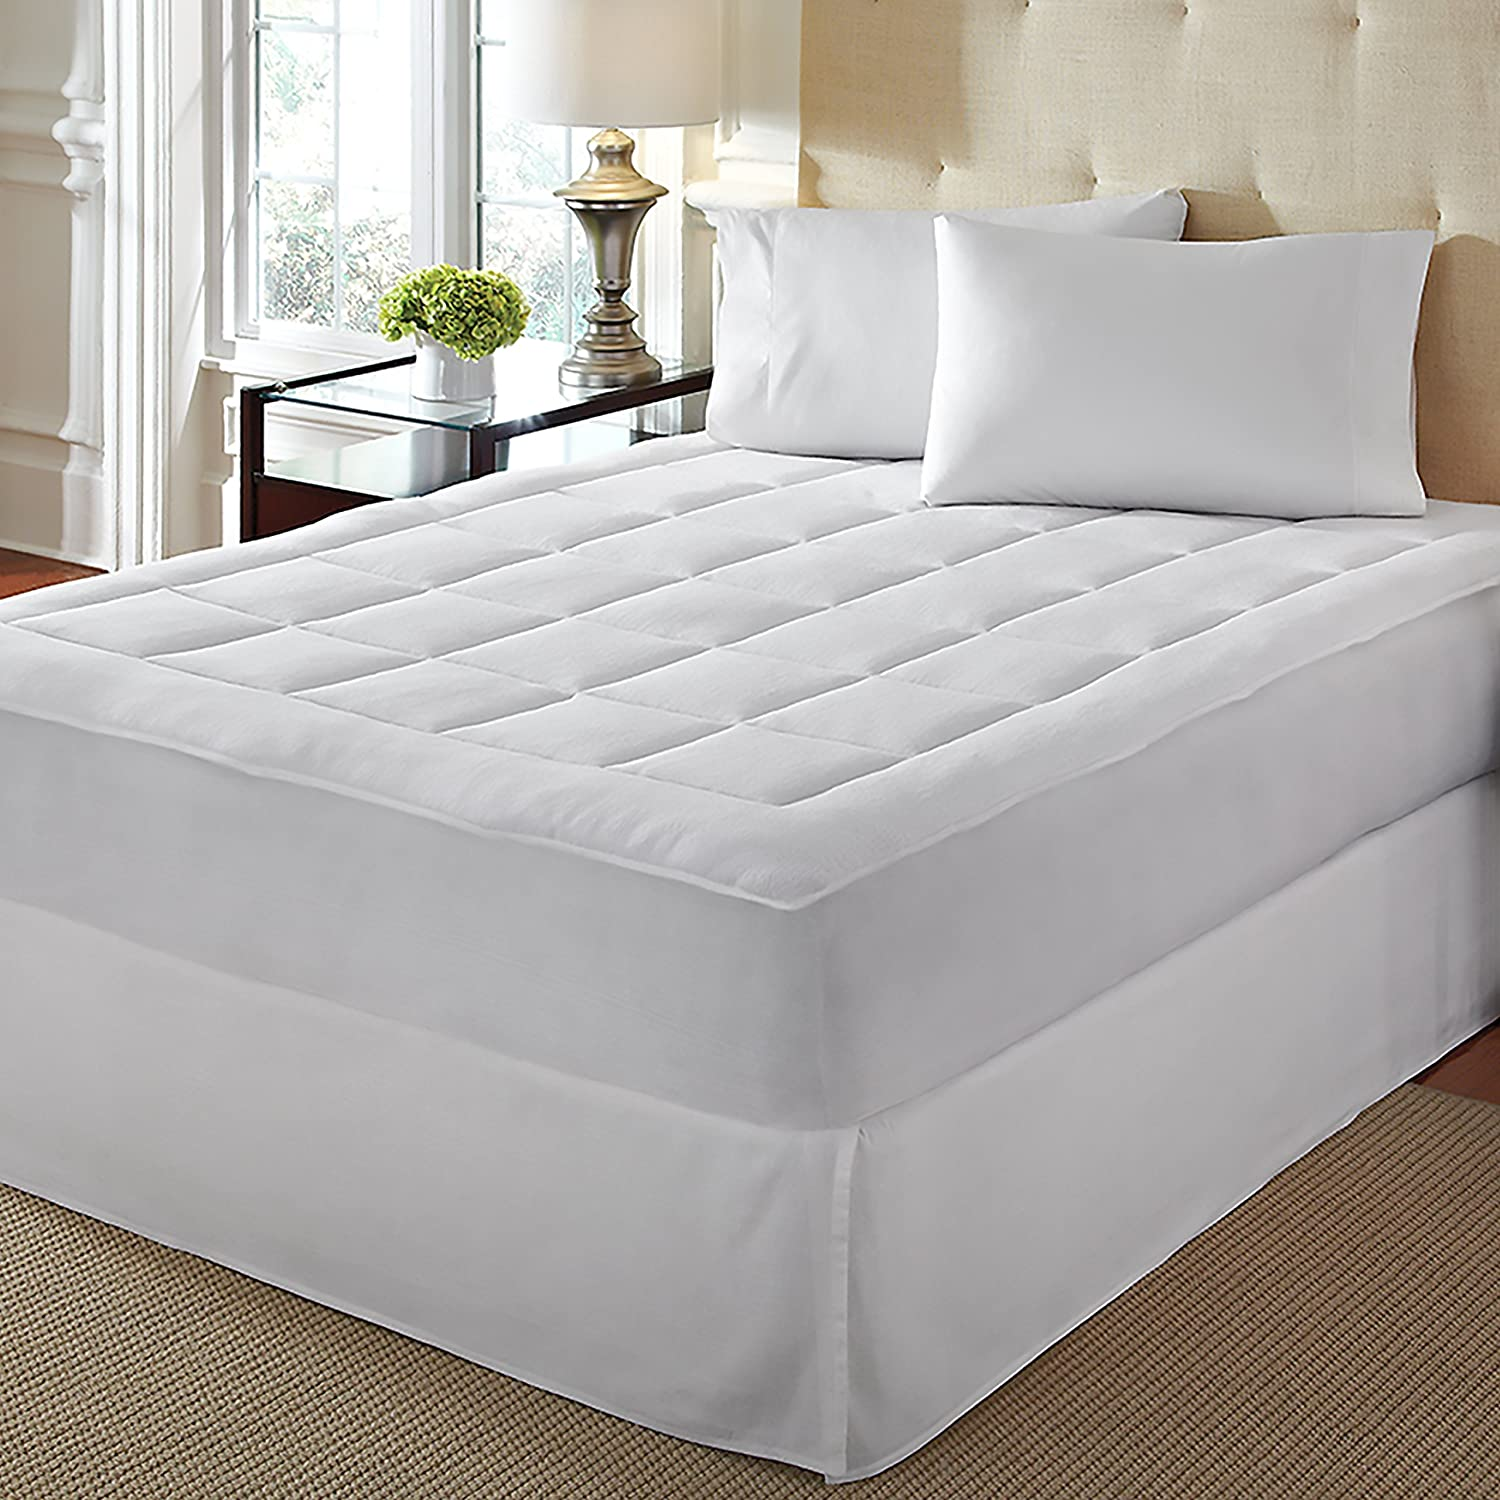 LoftWorks Rio Home Fashions Overfilled Super Soft Microplush Twin XL Mattress Pad